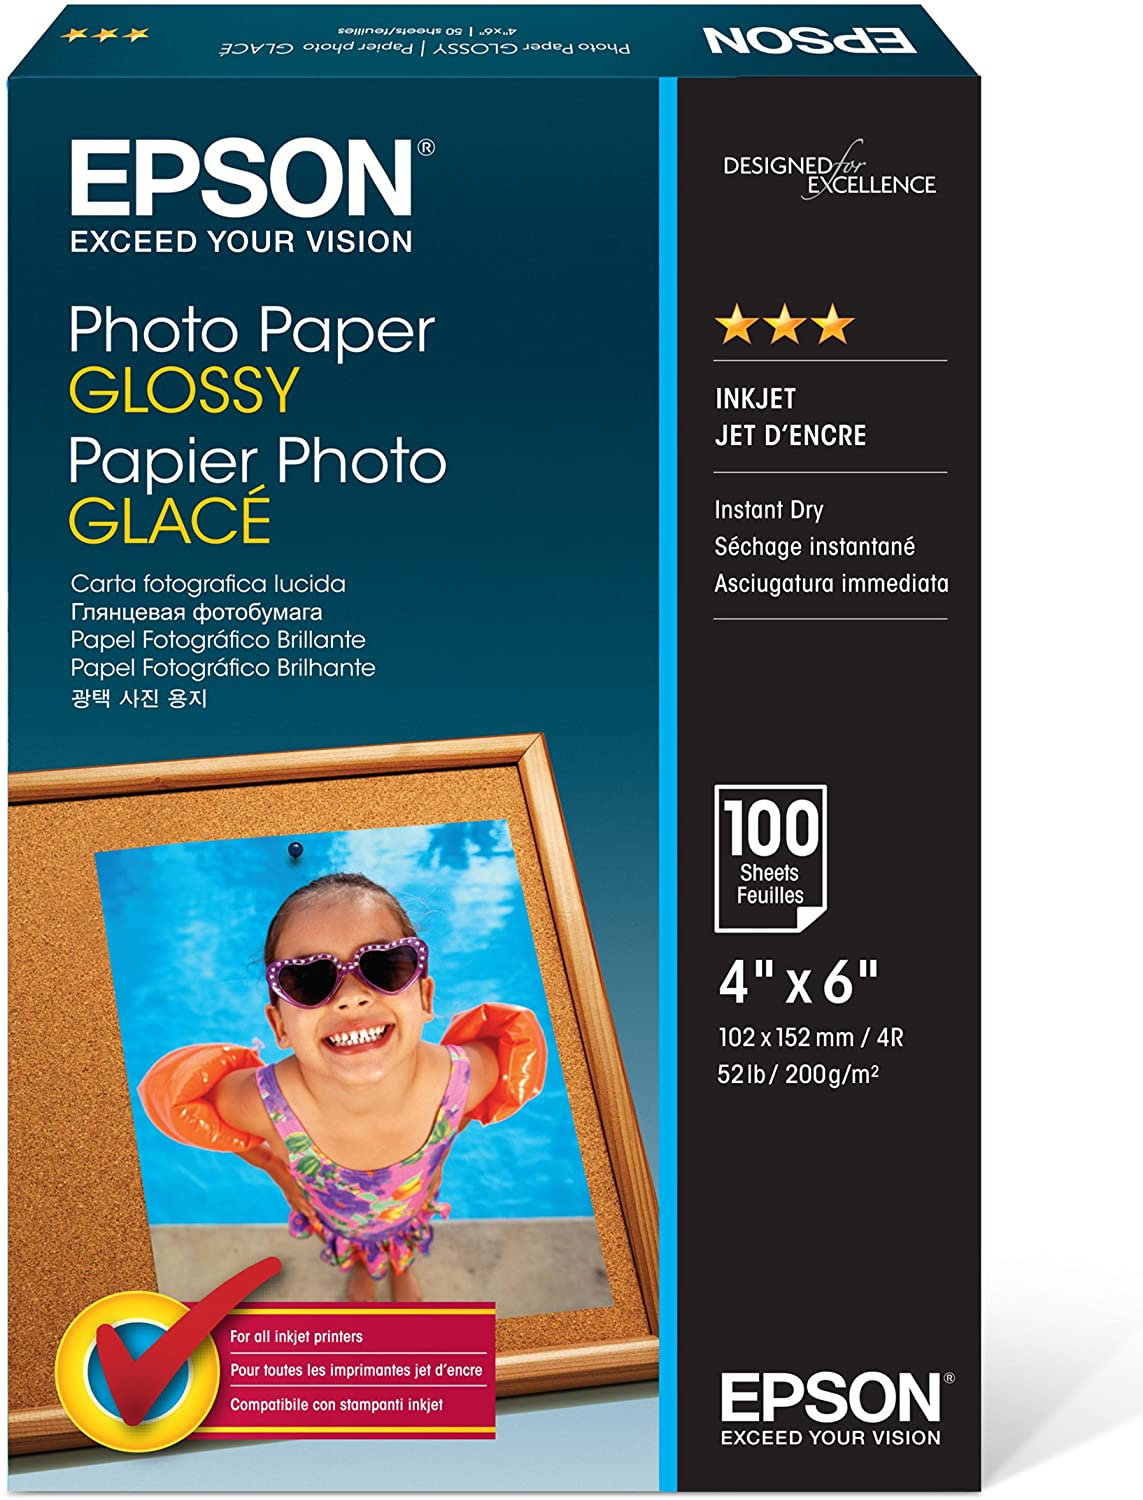 Epson Photo Paper Glossy - Borderless - (100 Sheets)